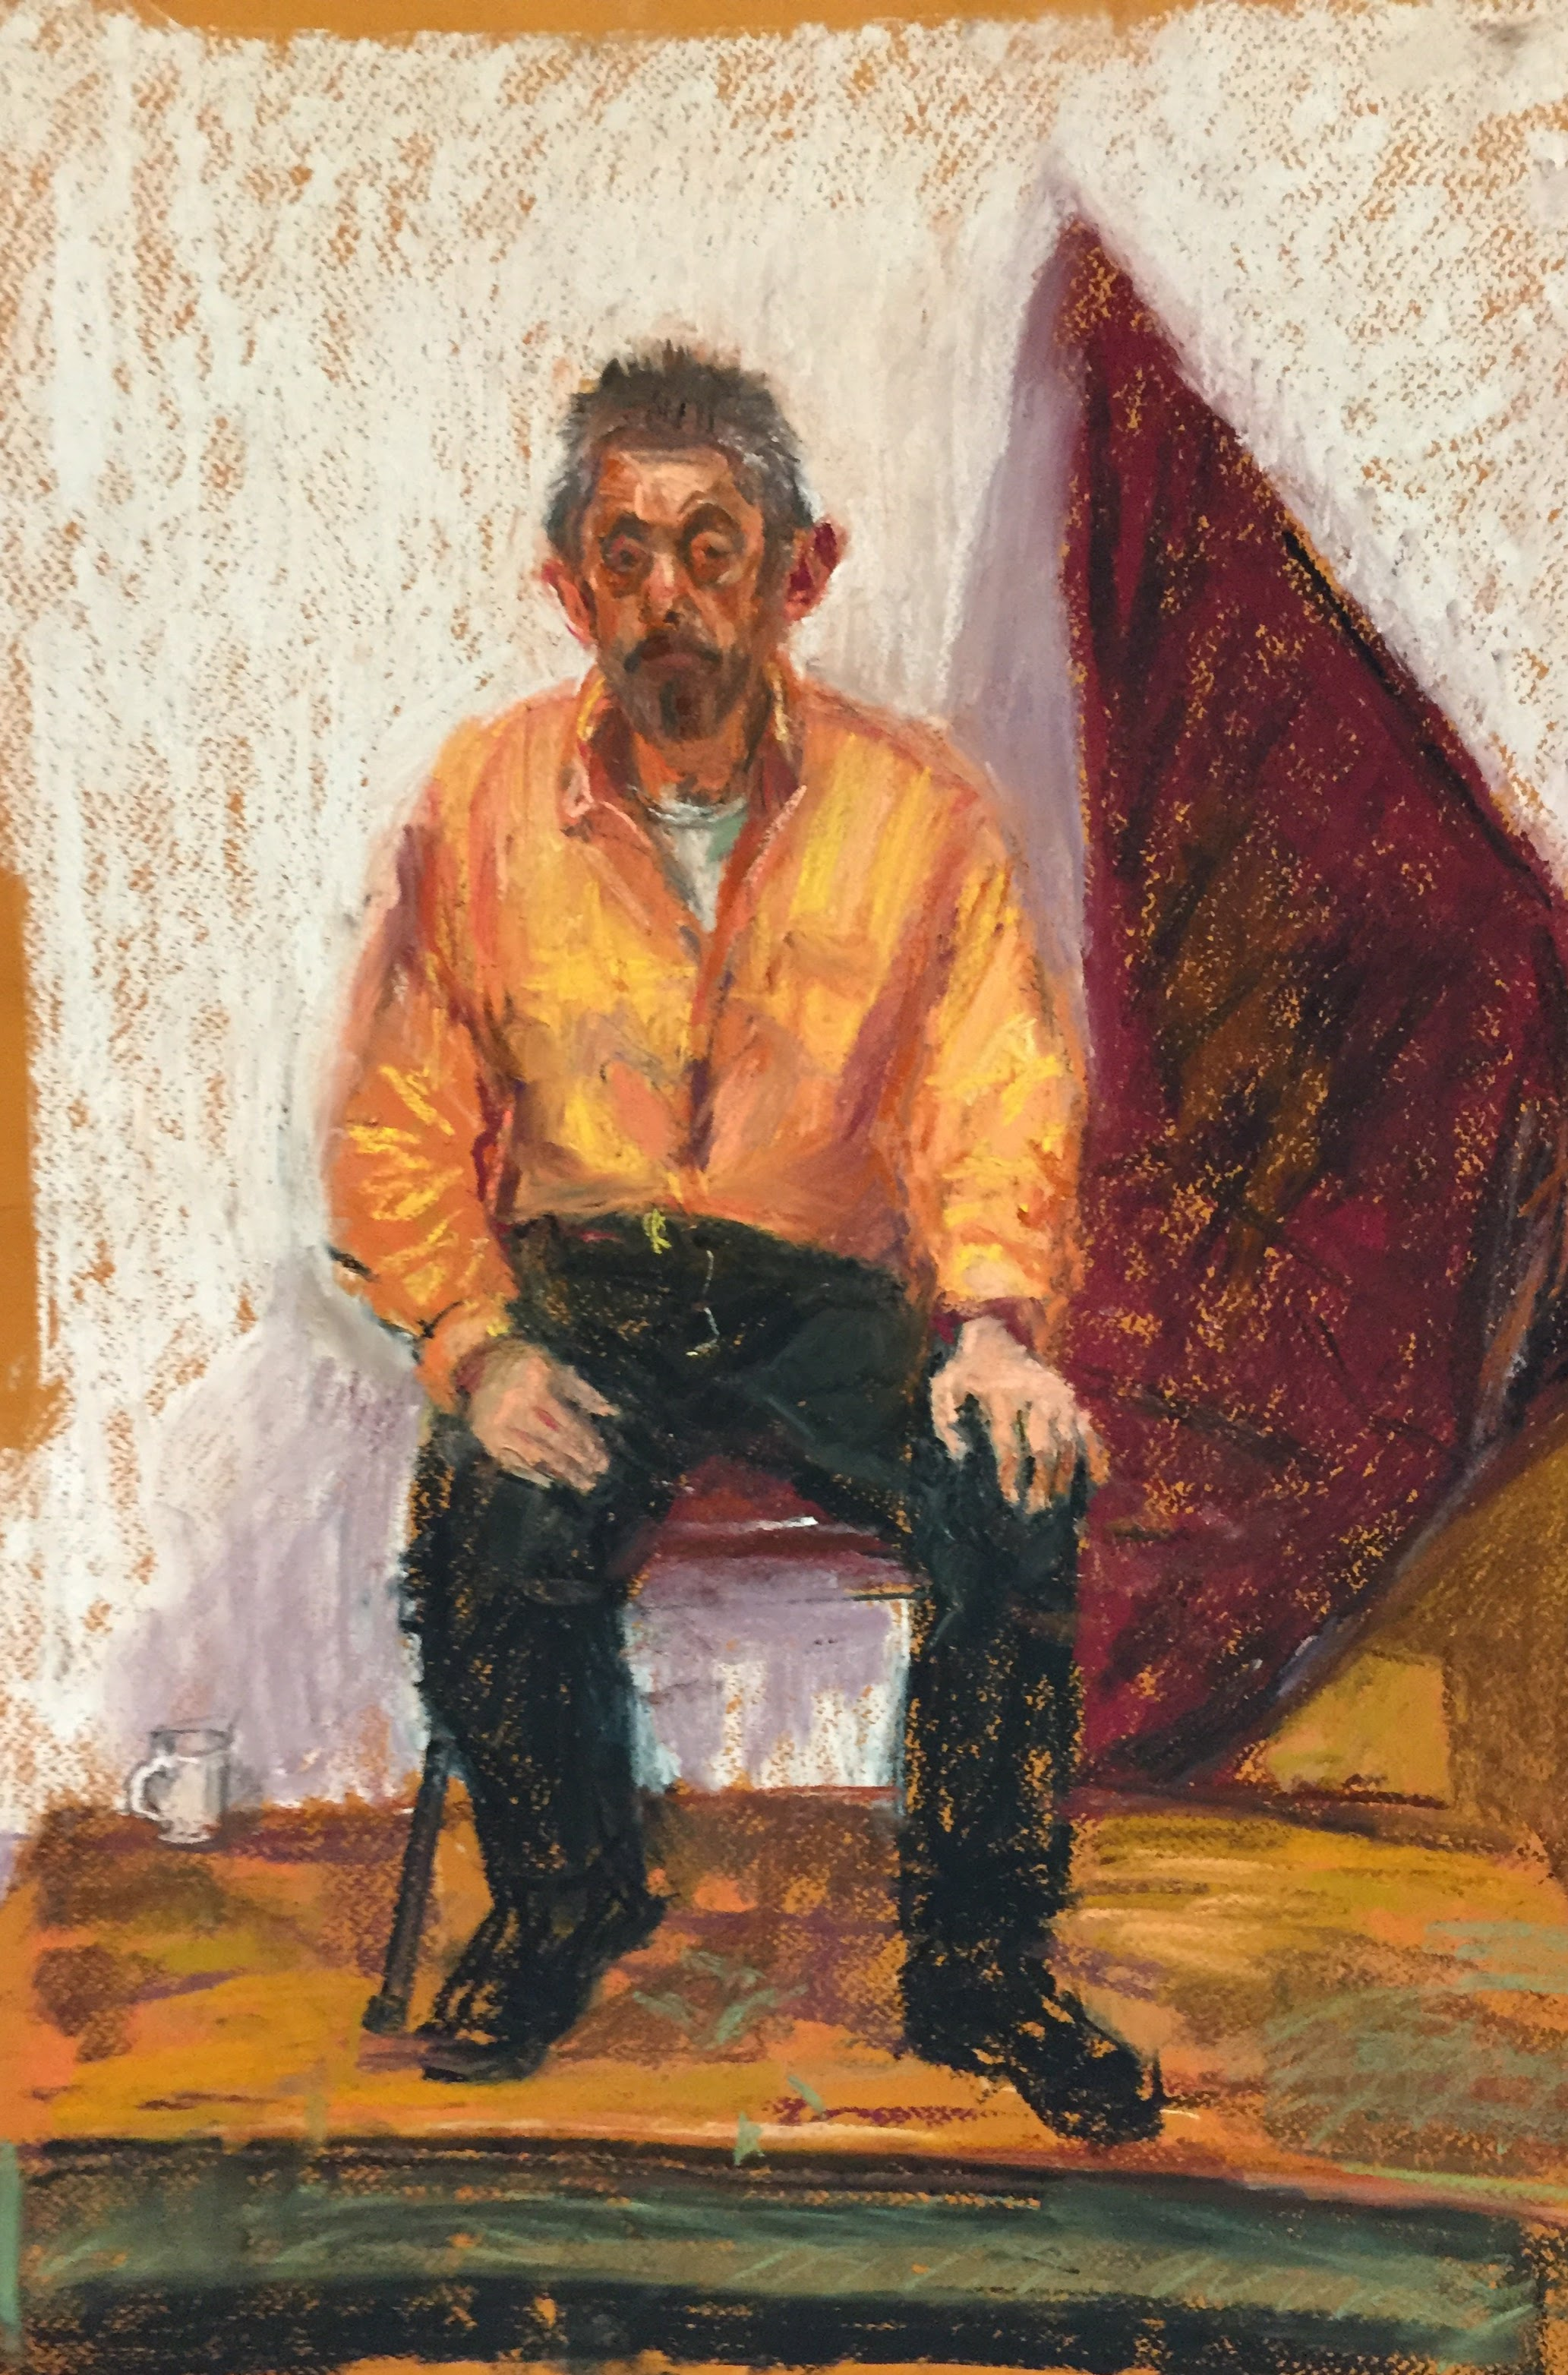 Clive in Orange Shirt 2   Unison pastels on paper  by Sally Hyman